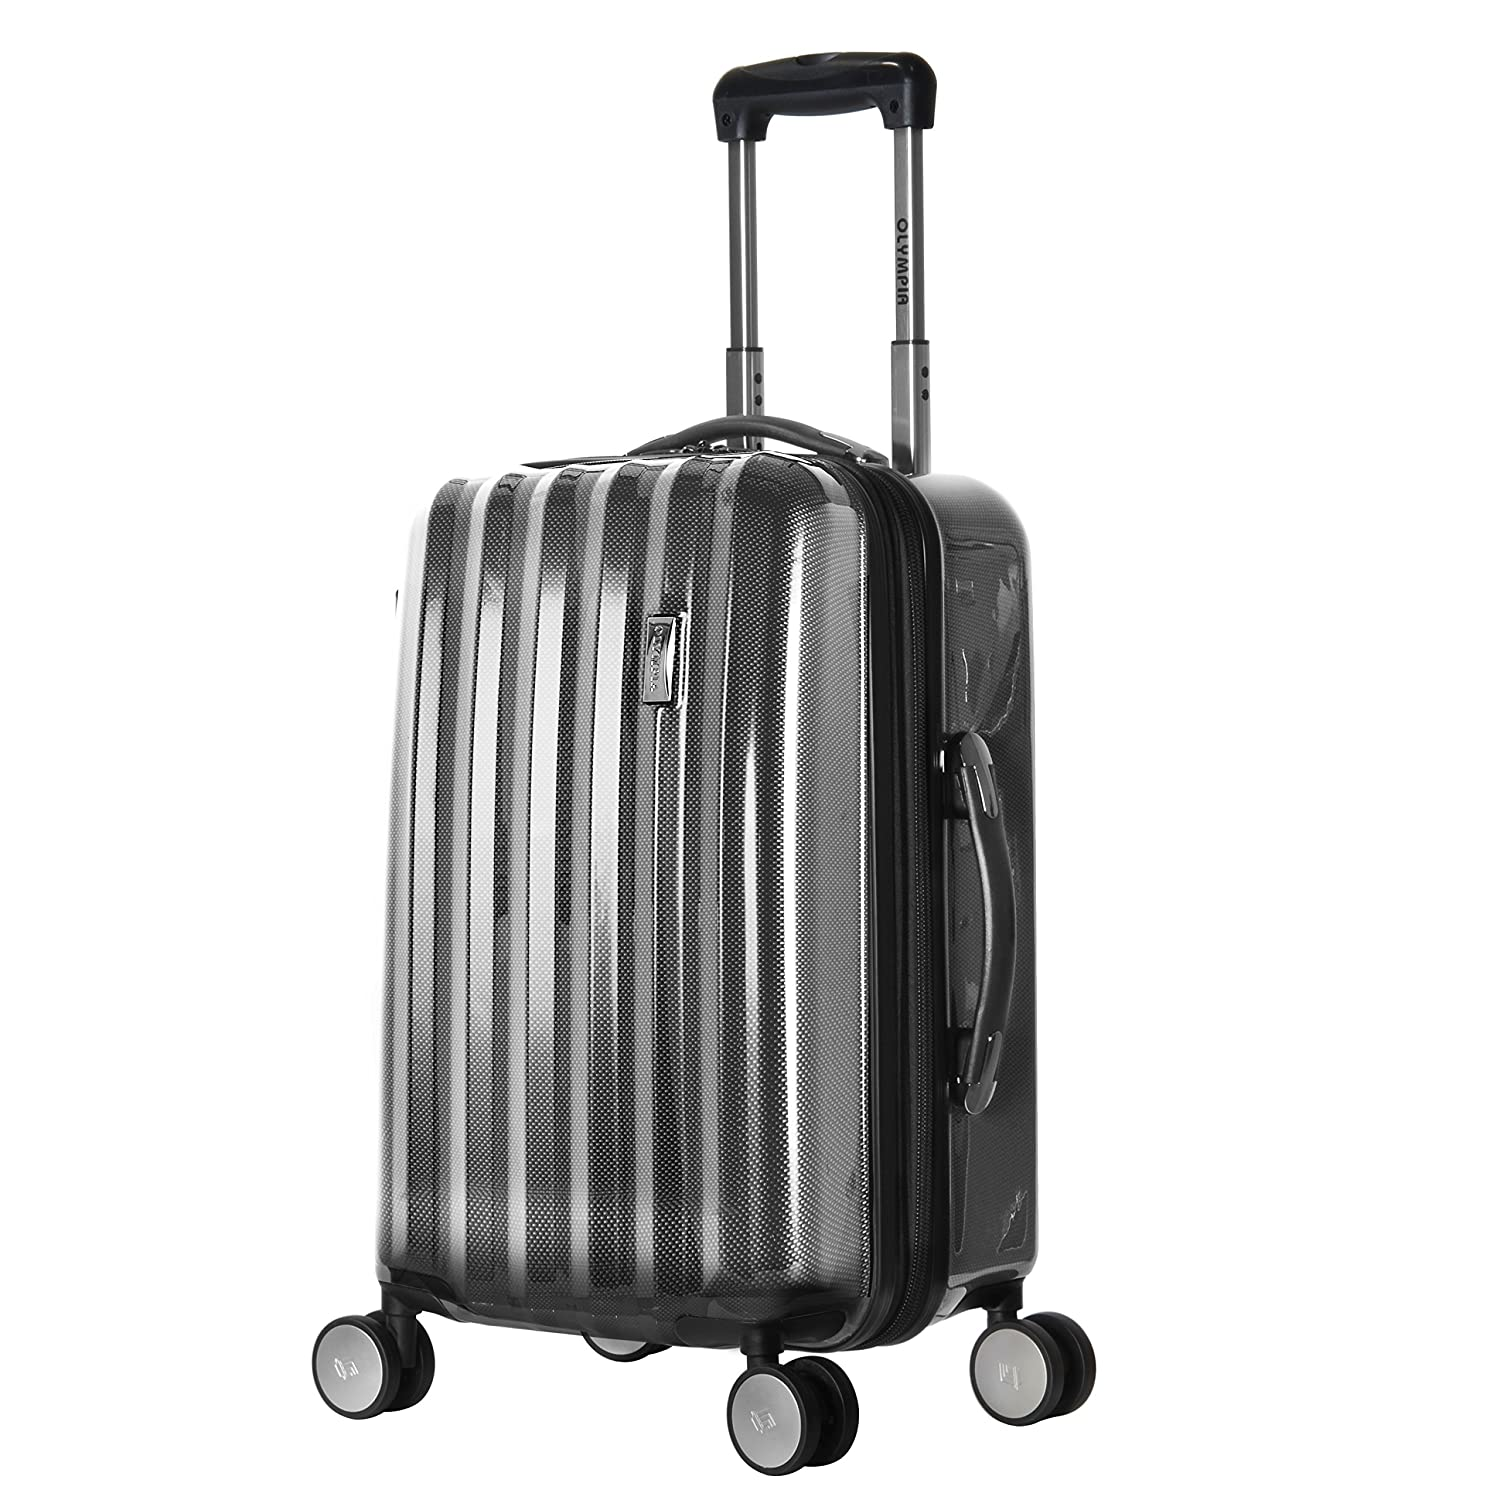 c937ad961100 Olympia Luggage Titan 21 Inch Expandable Carry-On Hardside Spinner, Black,  One Size